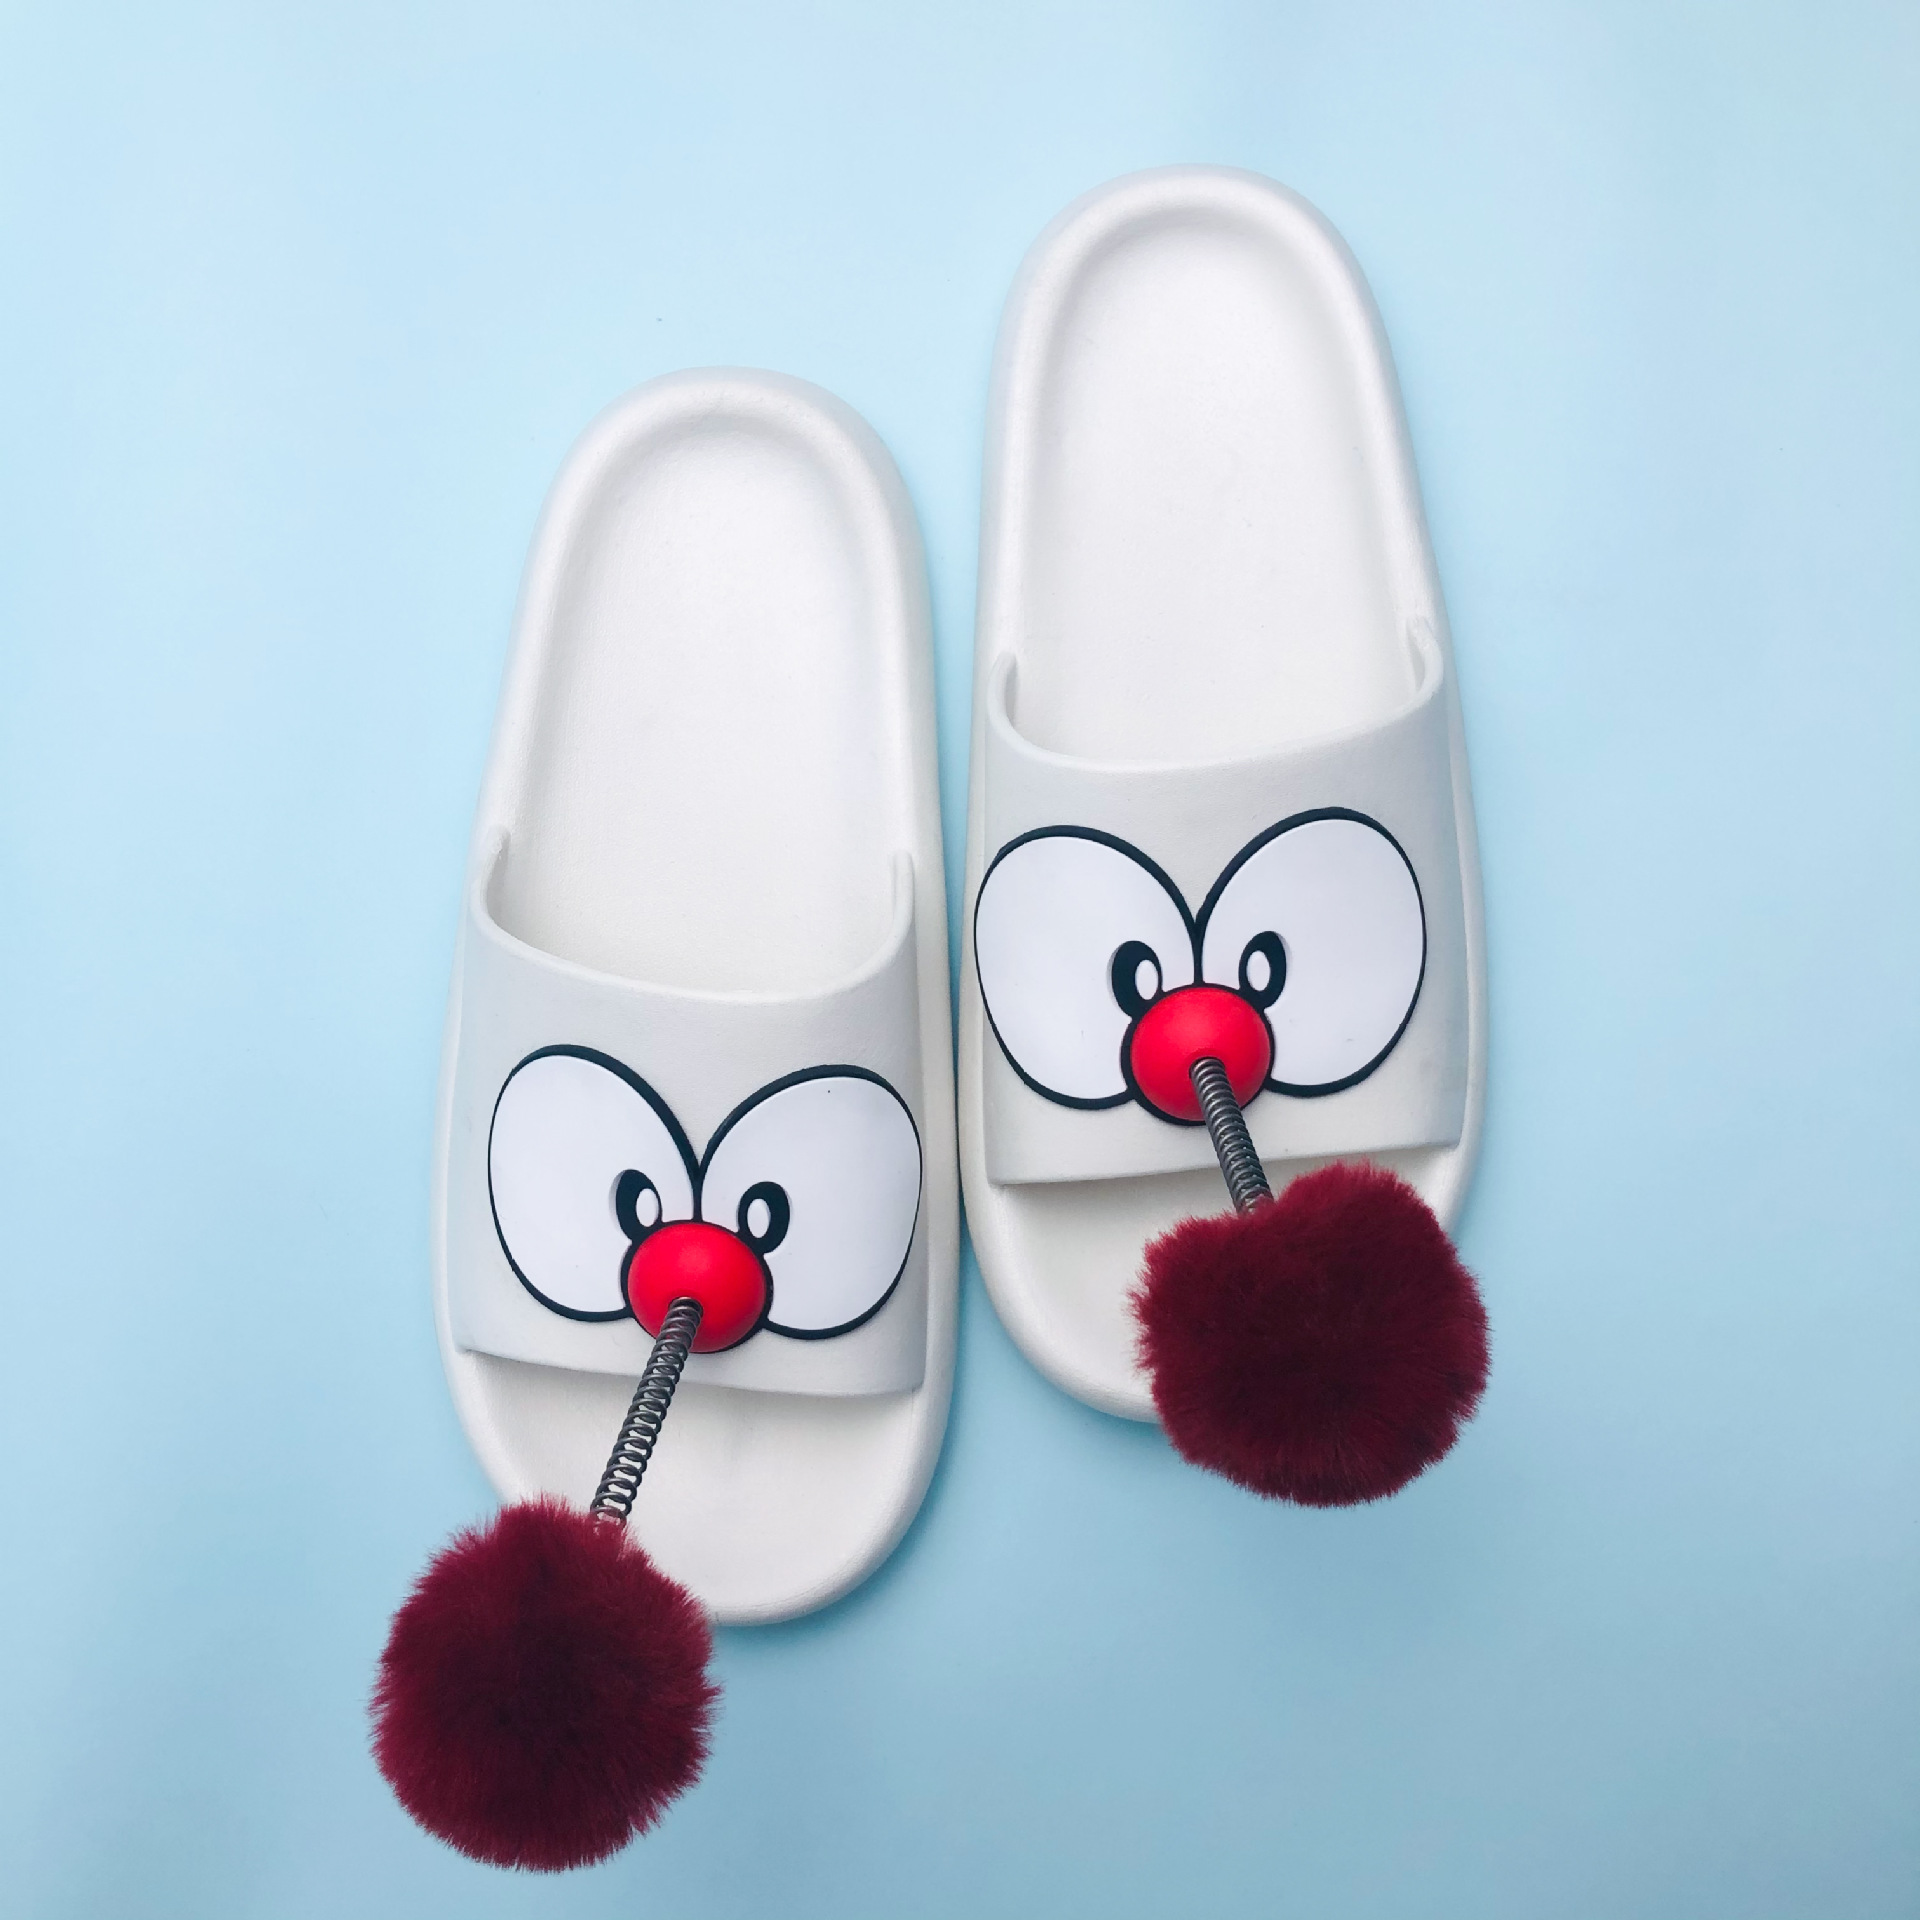 Cute Home Slippers for Adorable Slippers